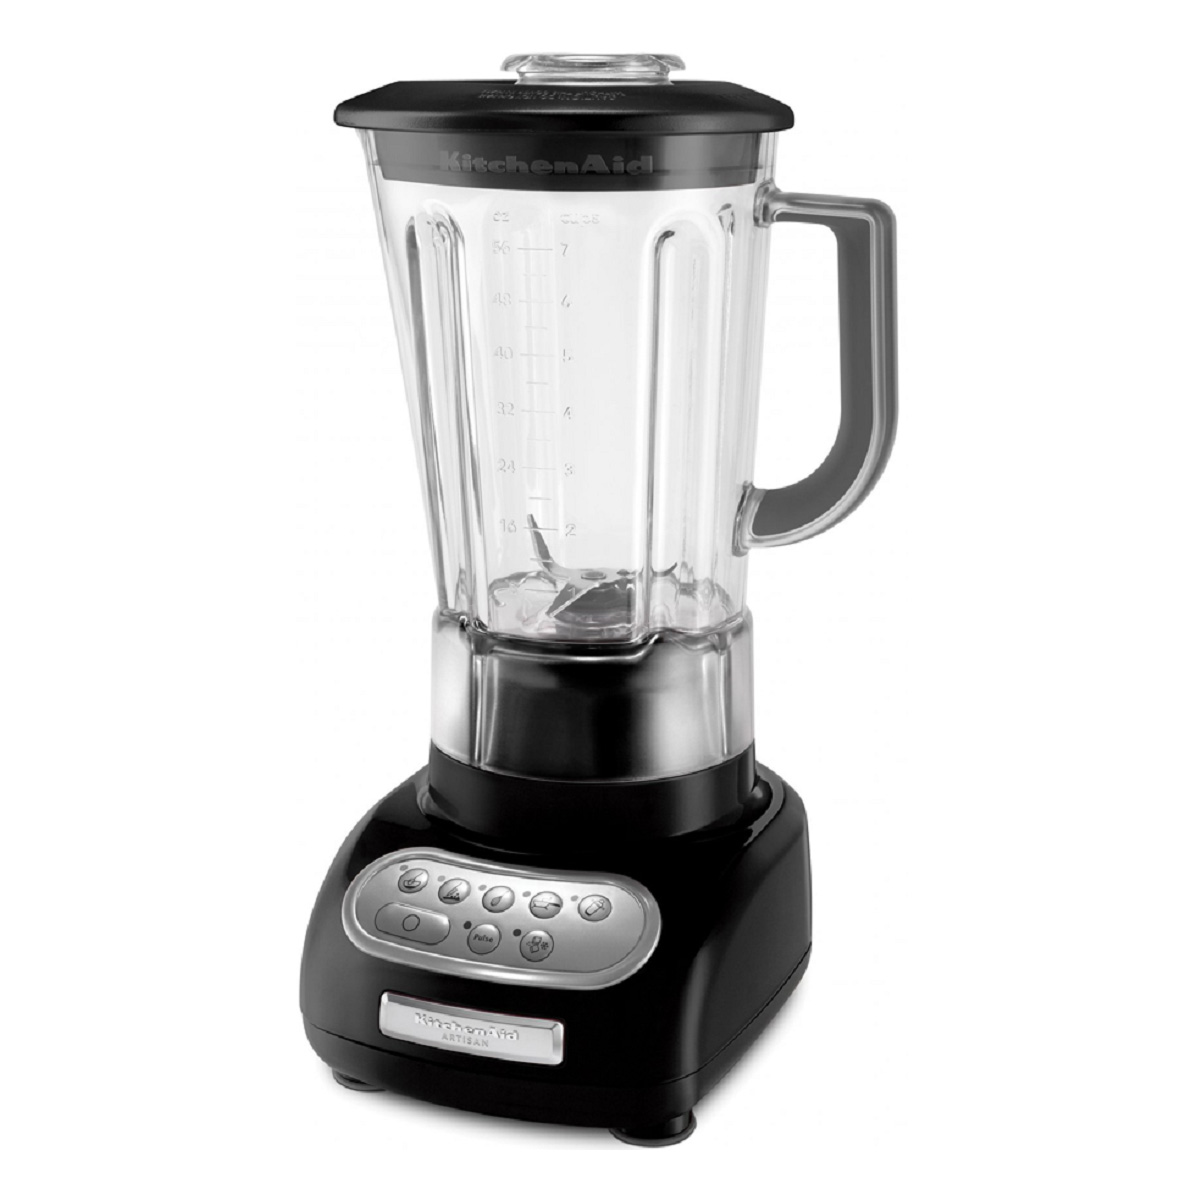 kitchenaid artisan ksb560 blender 92620 home clearance. Black Bedroom Furniture Sets. Home Design Ideas